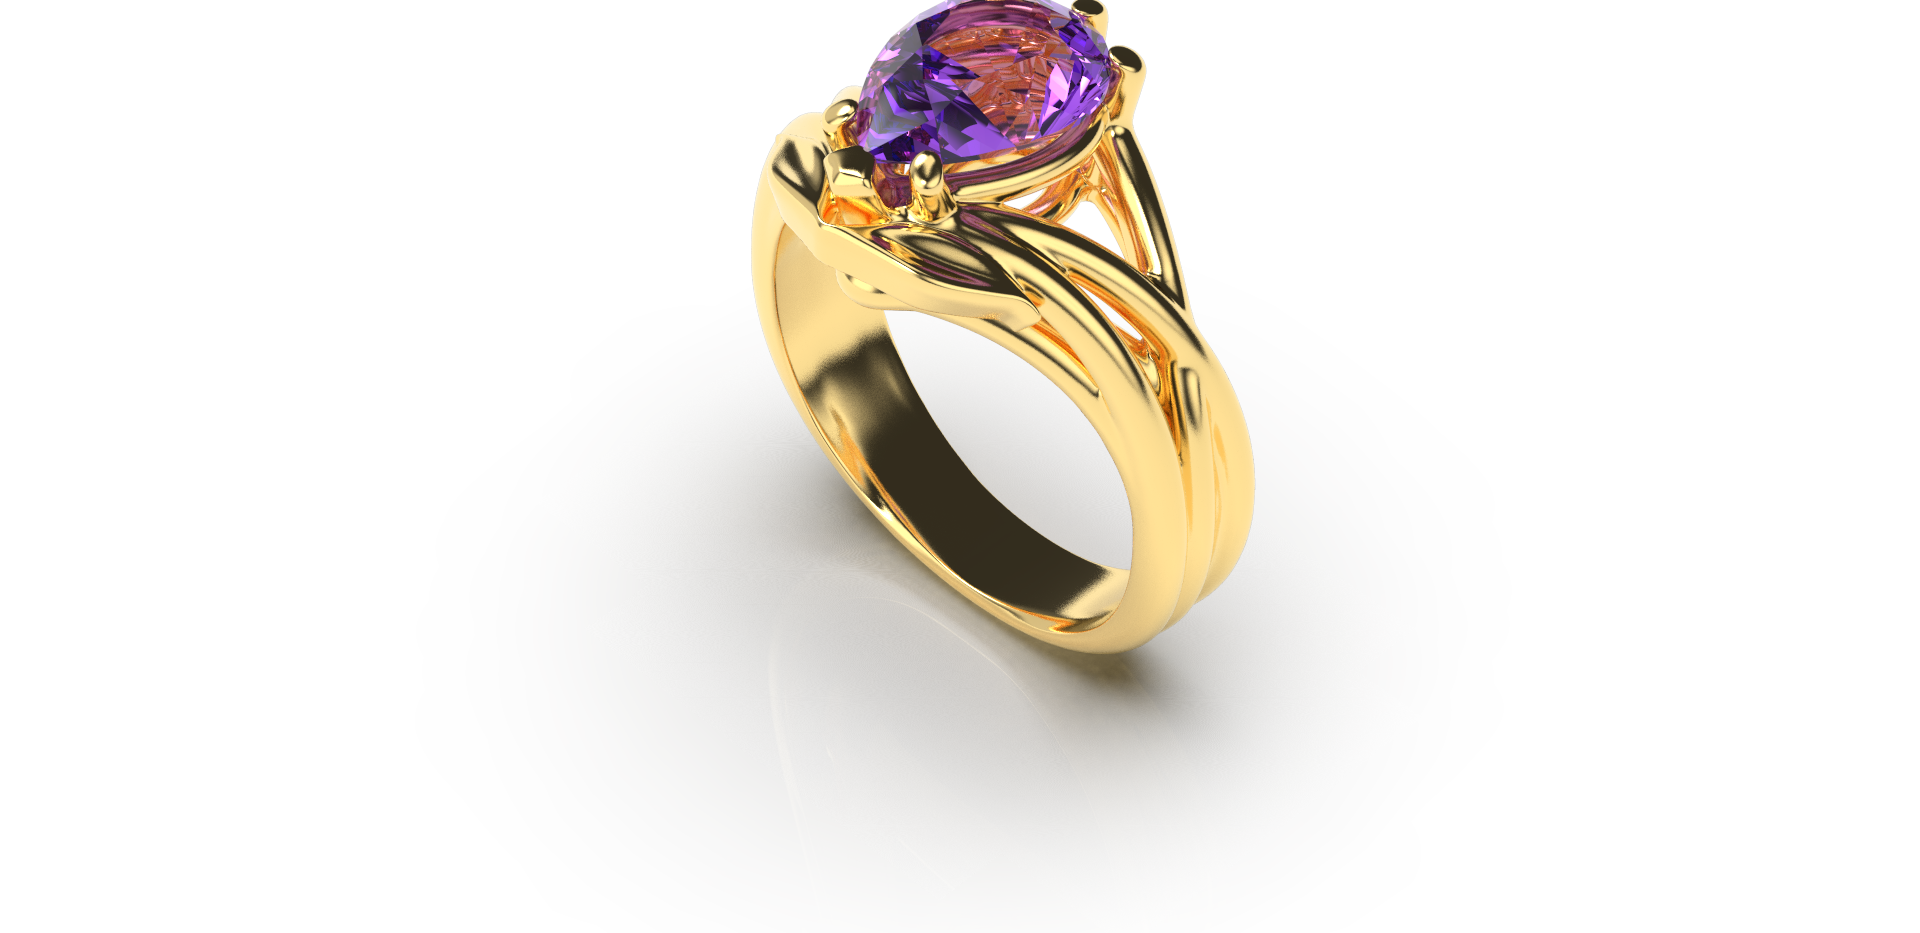 Bruce Trick - Gold Tanzanite Ring perspe